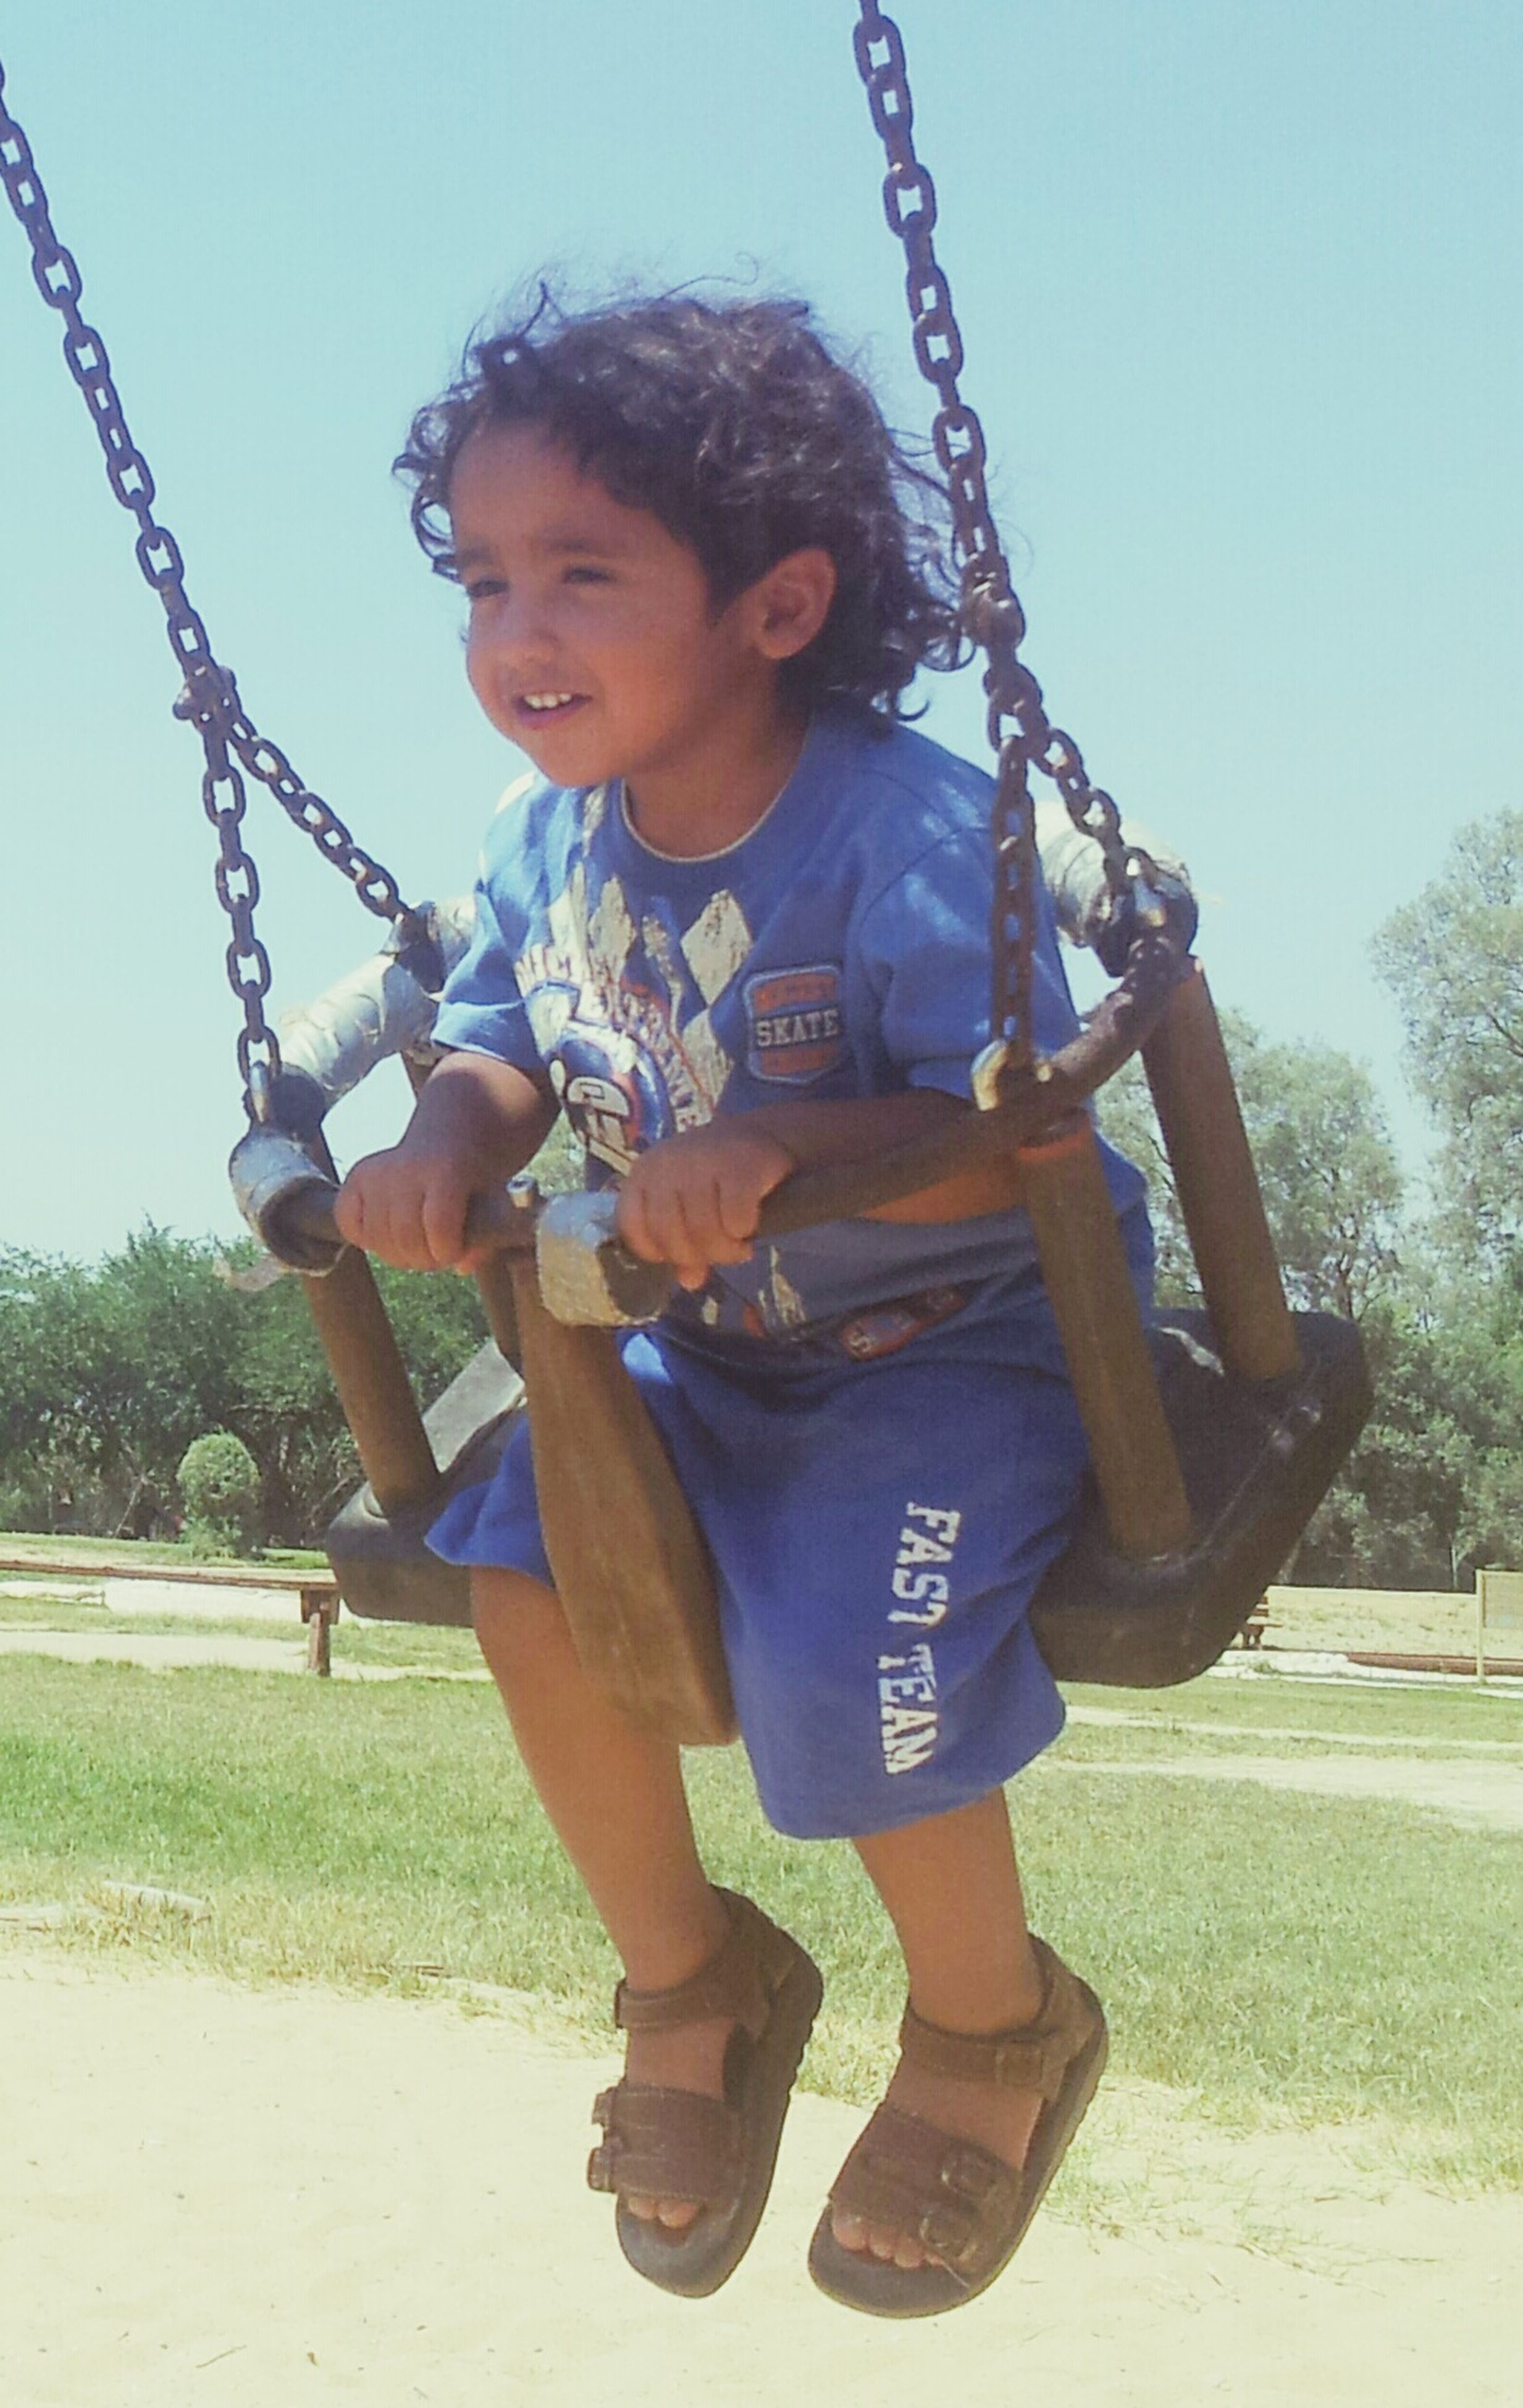 childhood, person, lifestyles, leisure activity, full length, casual clothing, fun, elementary age, happiness, swing, boys, playing, playground, enjoyment, front view, playful, smiling, girls